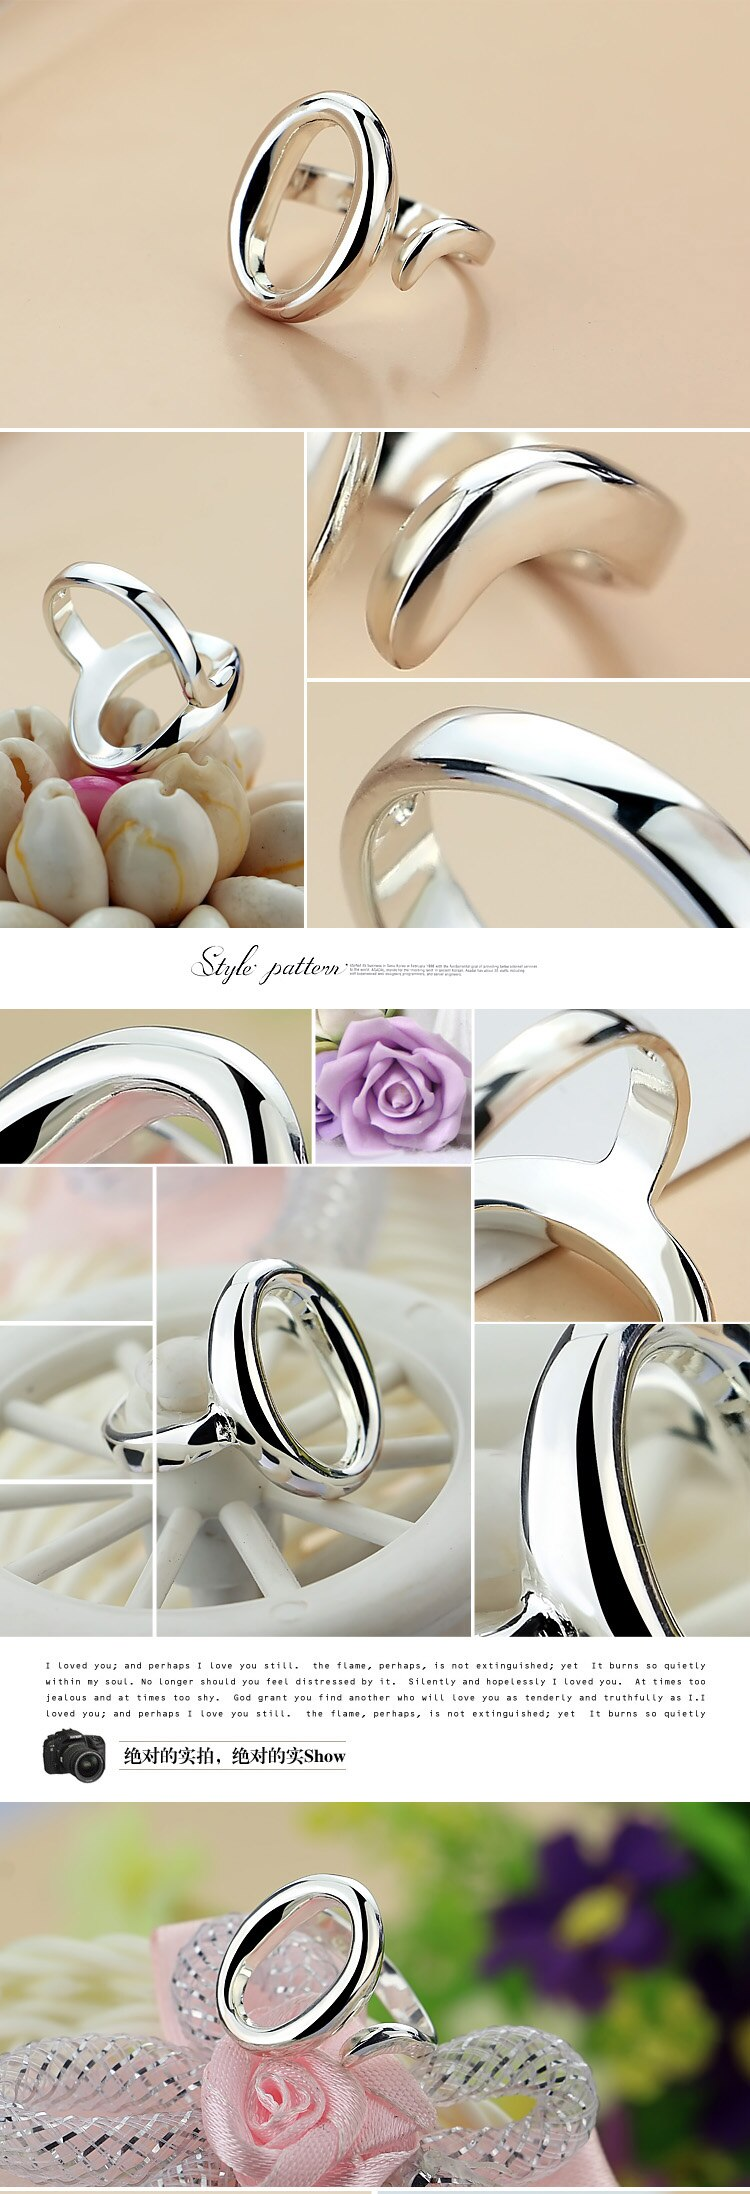 Fashion simple round big ring. 100% Solid 925 sterling silver adjustable size ring for women. Hot Sales Charm Lady Jewelry.gift